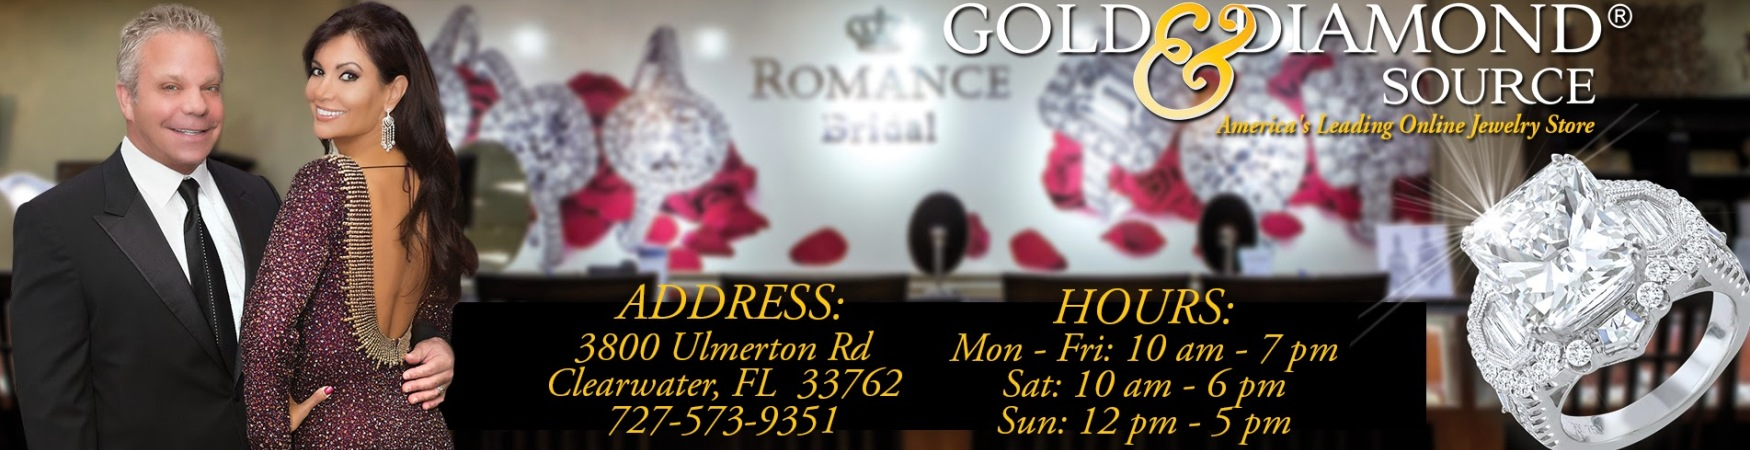 Gold & Diamond Source reviews | Accessories at 3800 Ulmerton Road - Clearwater FL